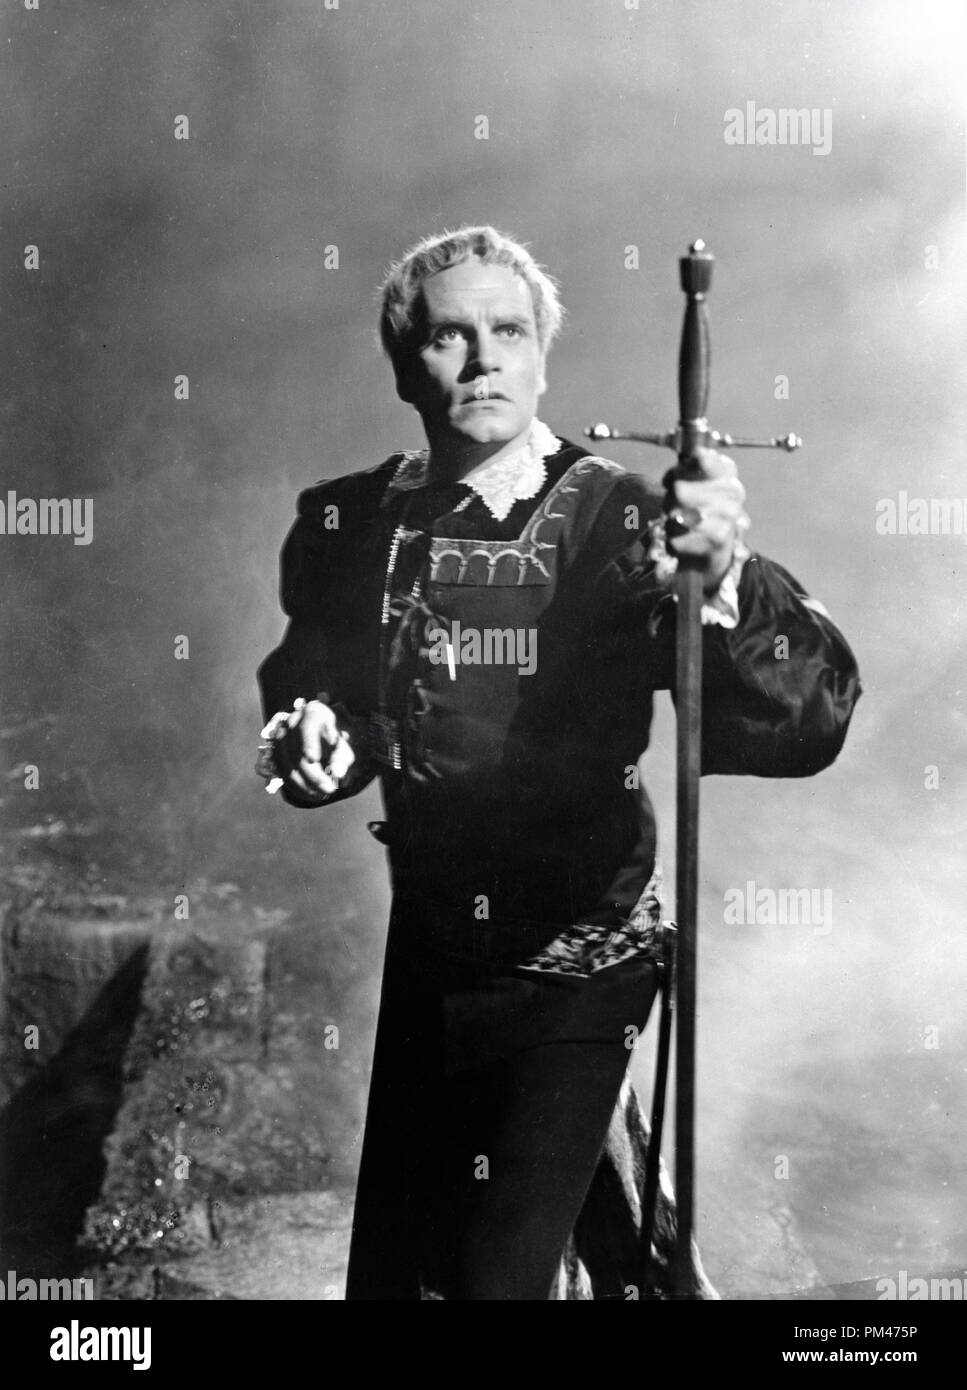 Laurence Olivier in character for the film version of 'Hamlet' 1948.  File Reference # 1104_005THA - Stock Image